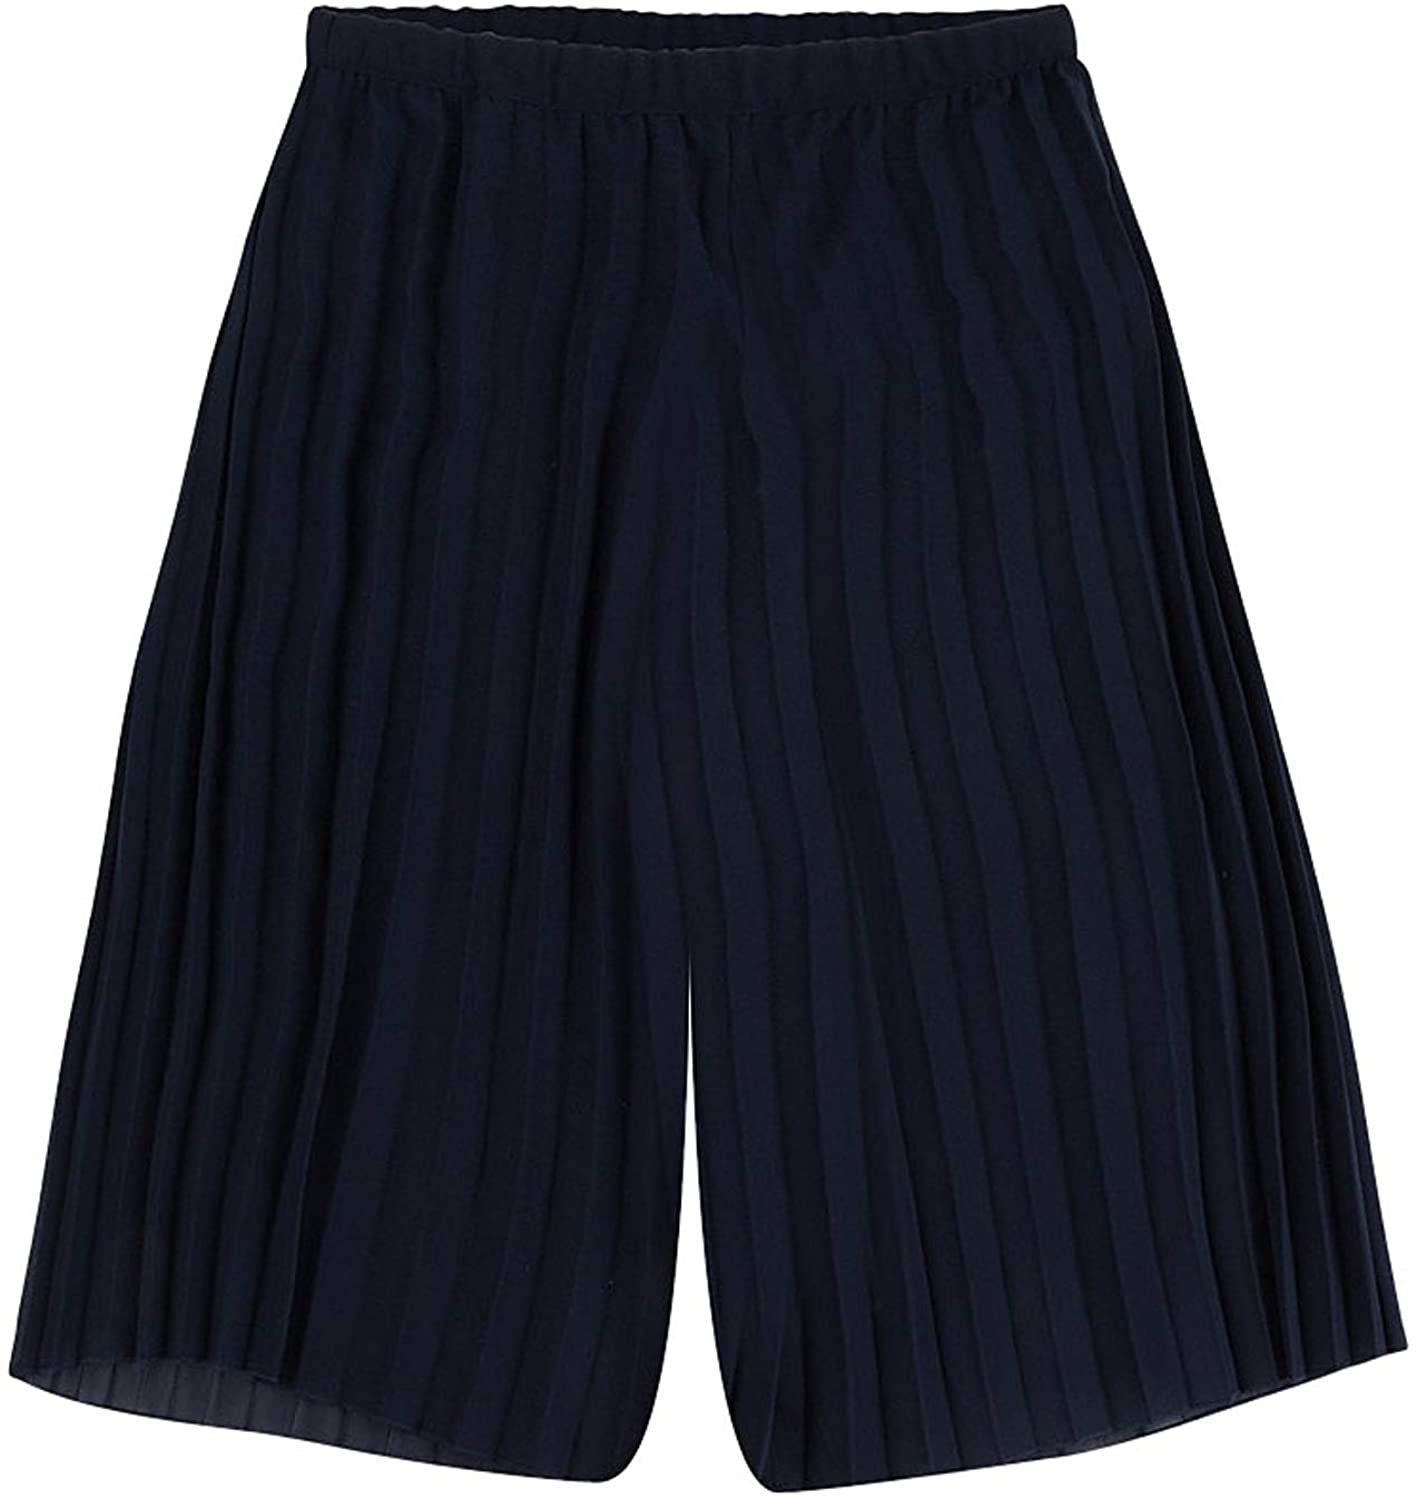 Mayoral - Pleated Skirt for Girls - 6955, Navy